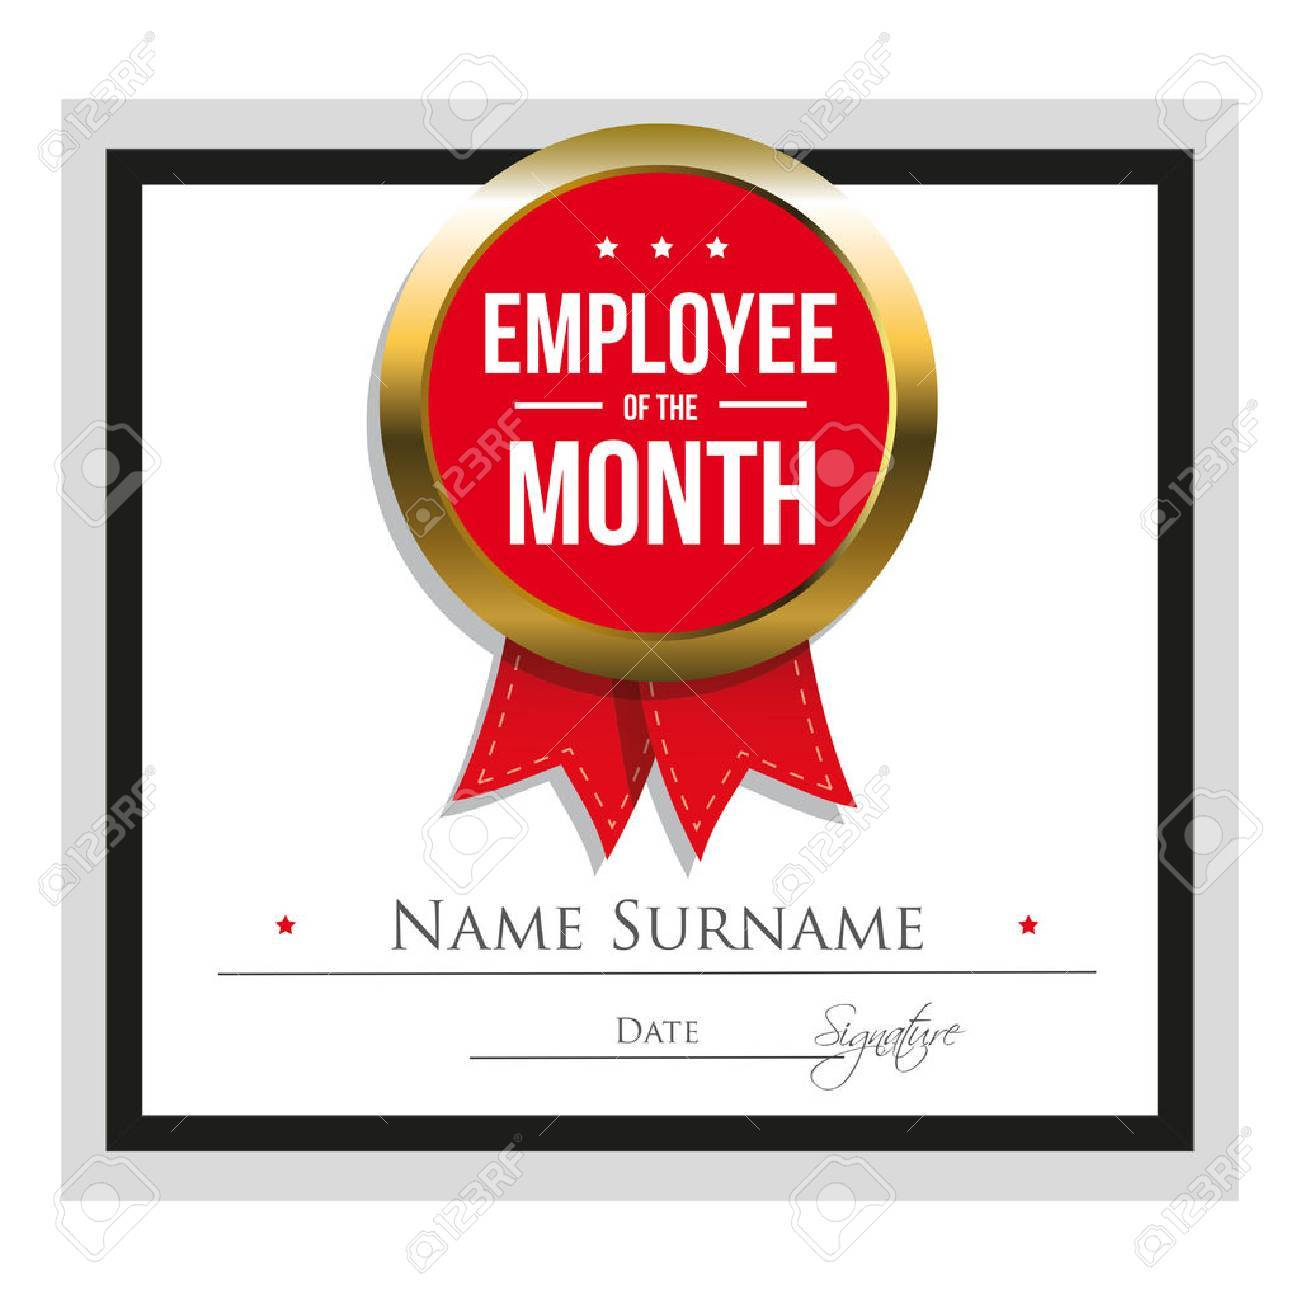 employee of the month certificate template royalty free cliparts